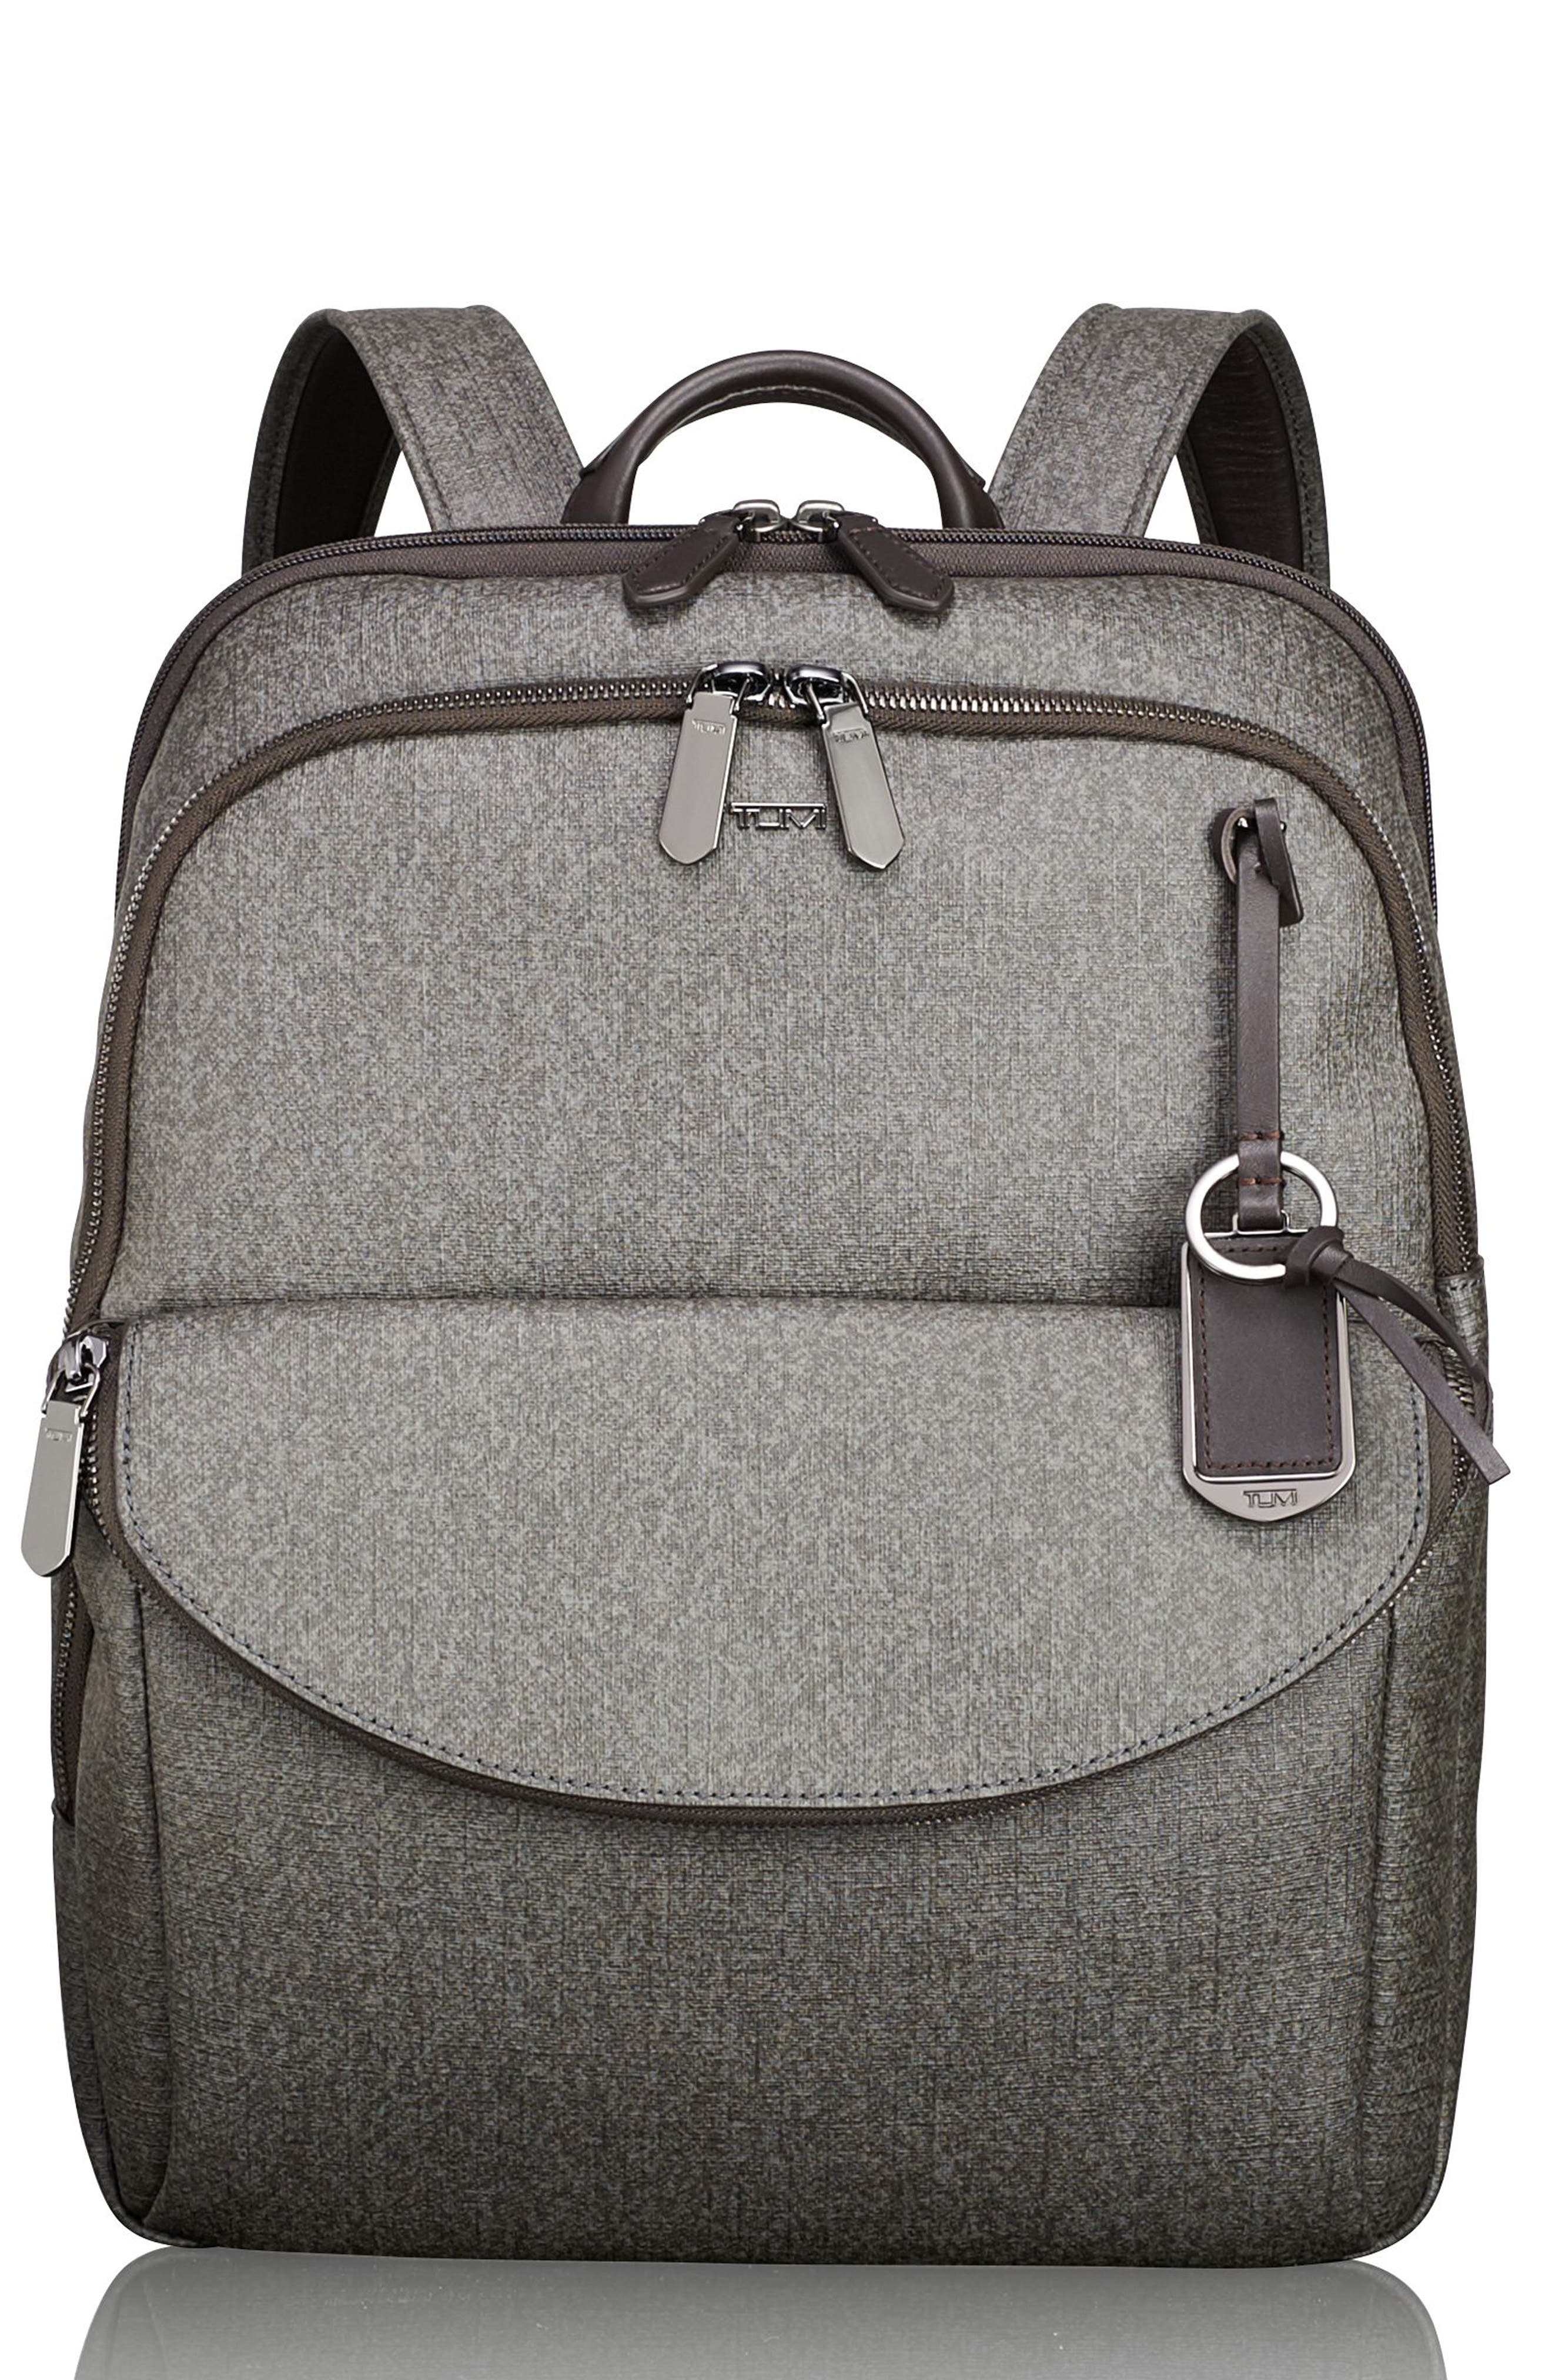 Stanton – Hettie Coated Canvas Backpack,                             Main thumbnail 1, color,                             020